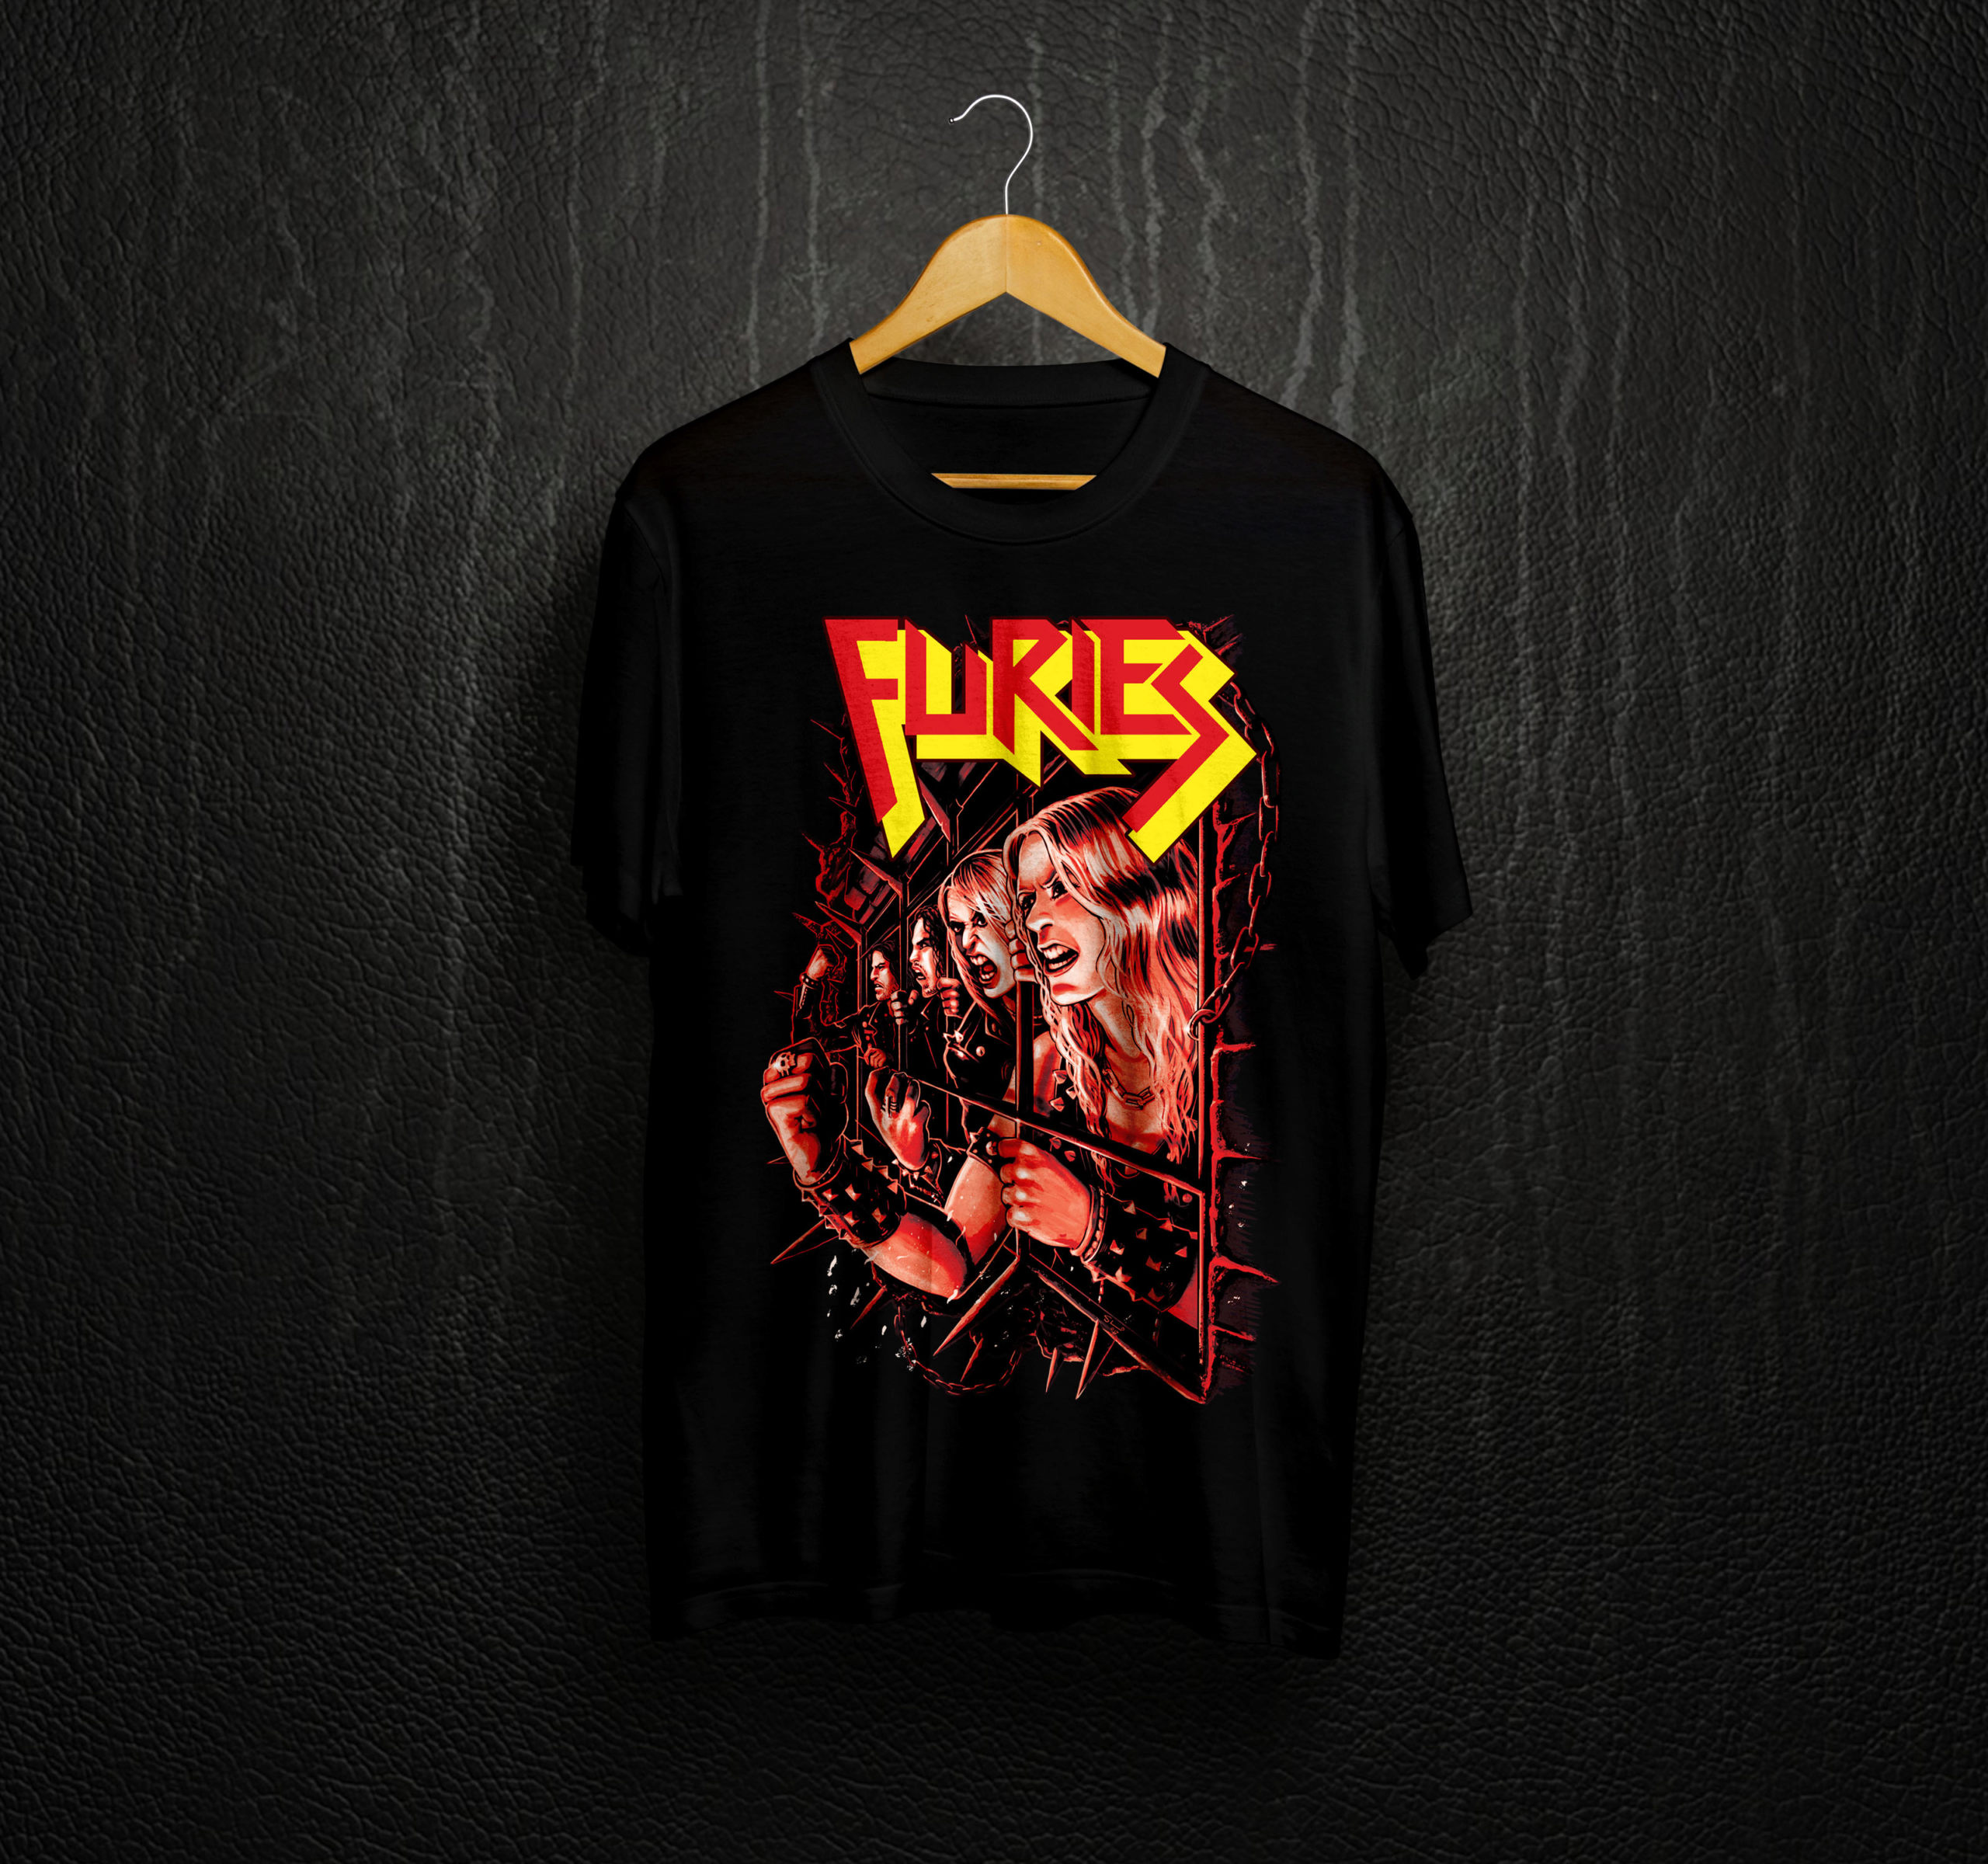 Patch et Tee-Shirt de FURIES ... - Page 2 Tshirt11